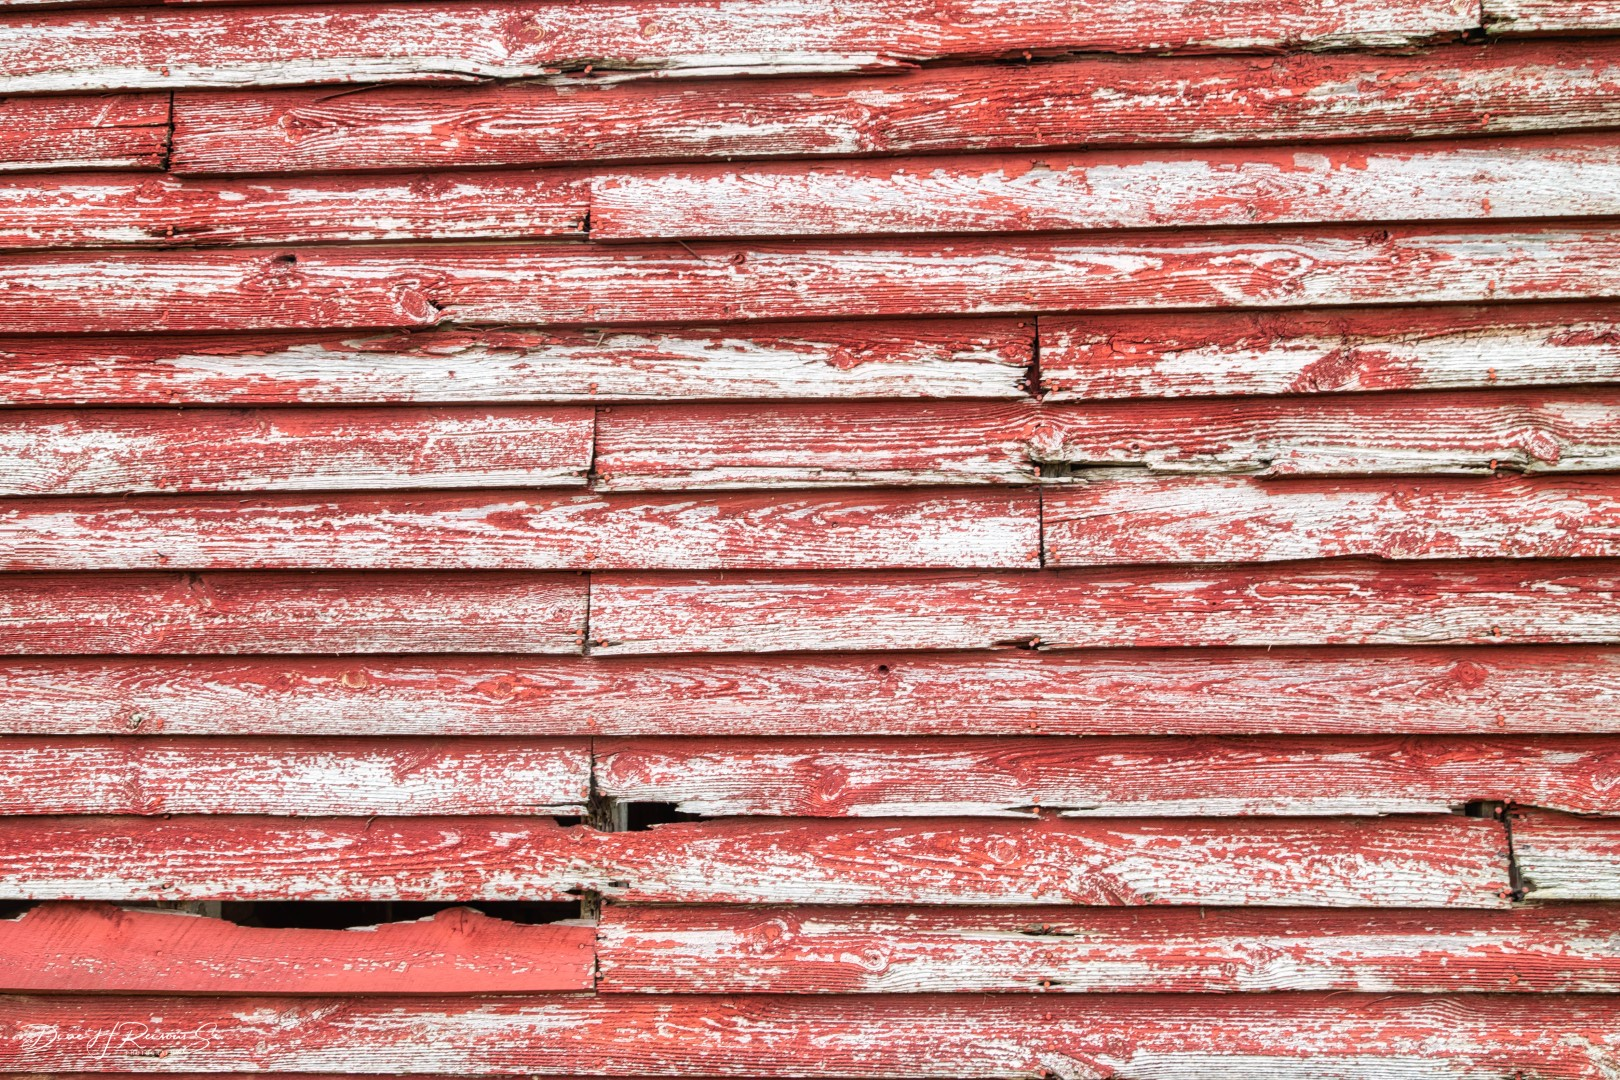 Great texture on this old red barn